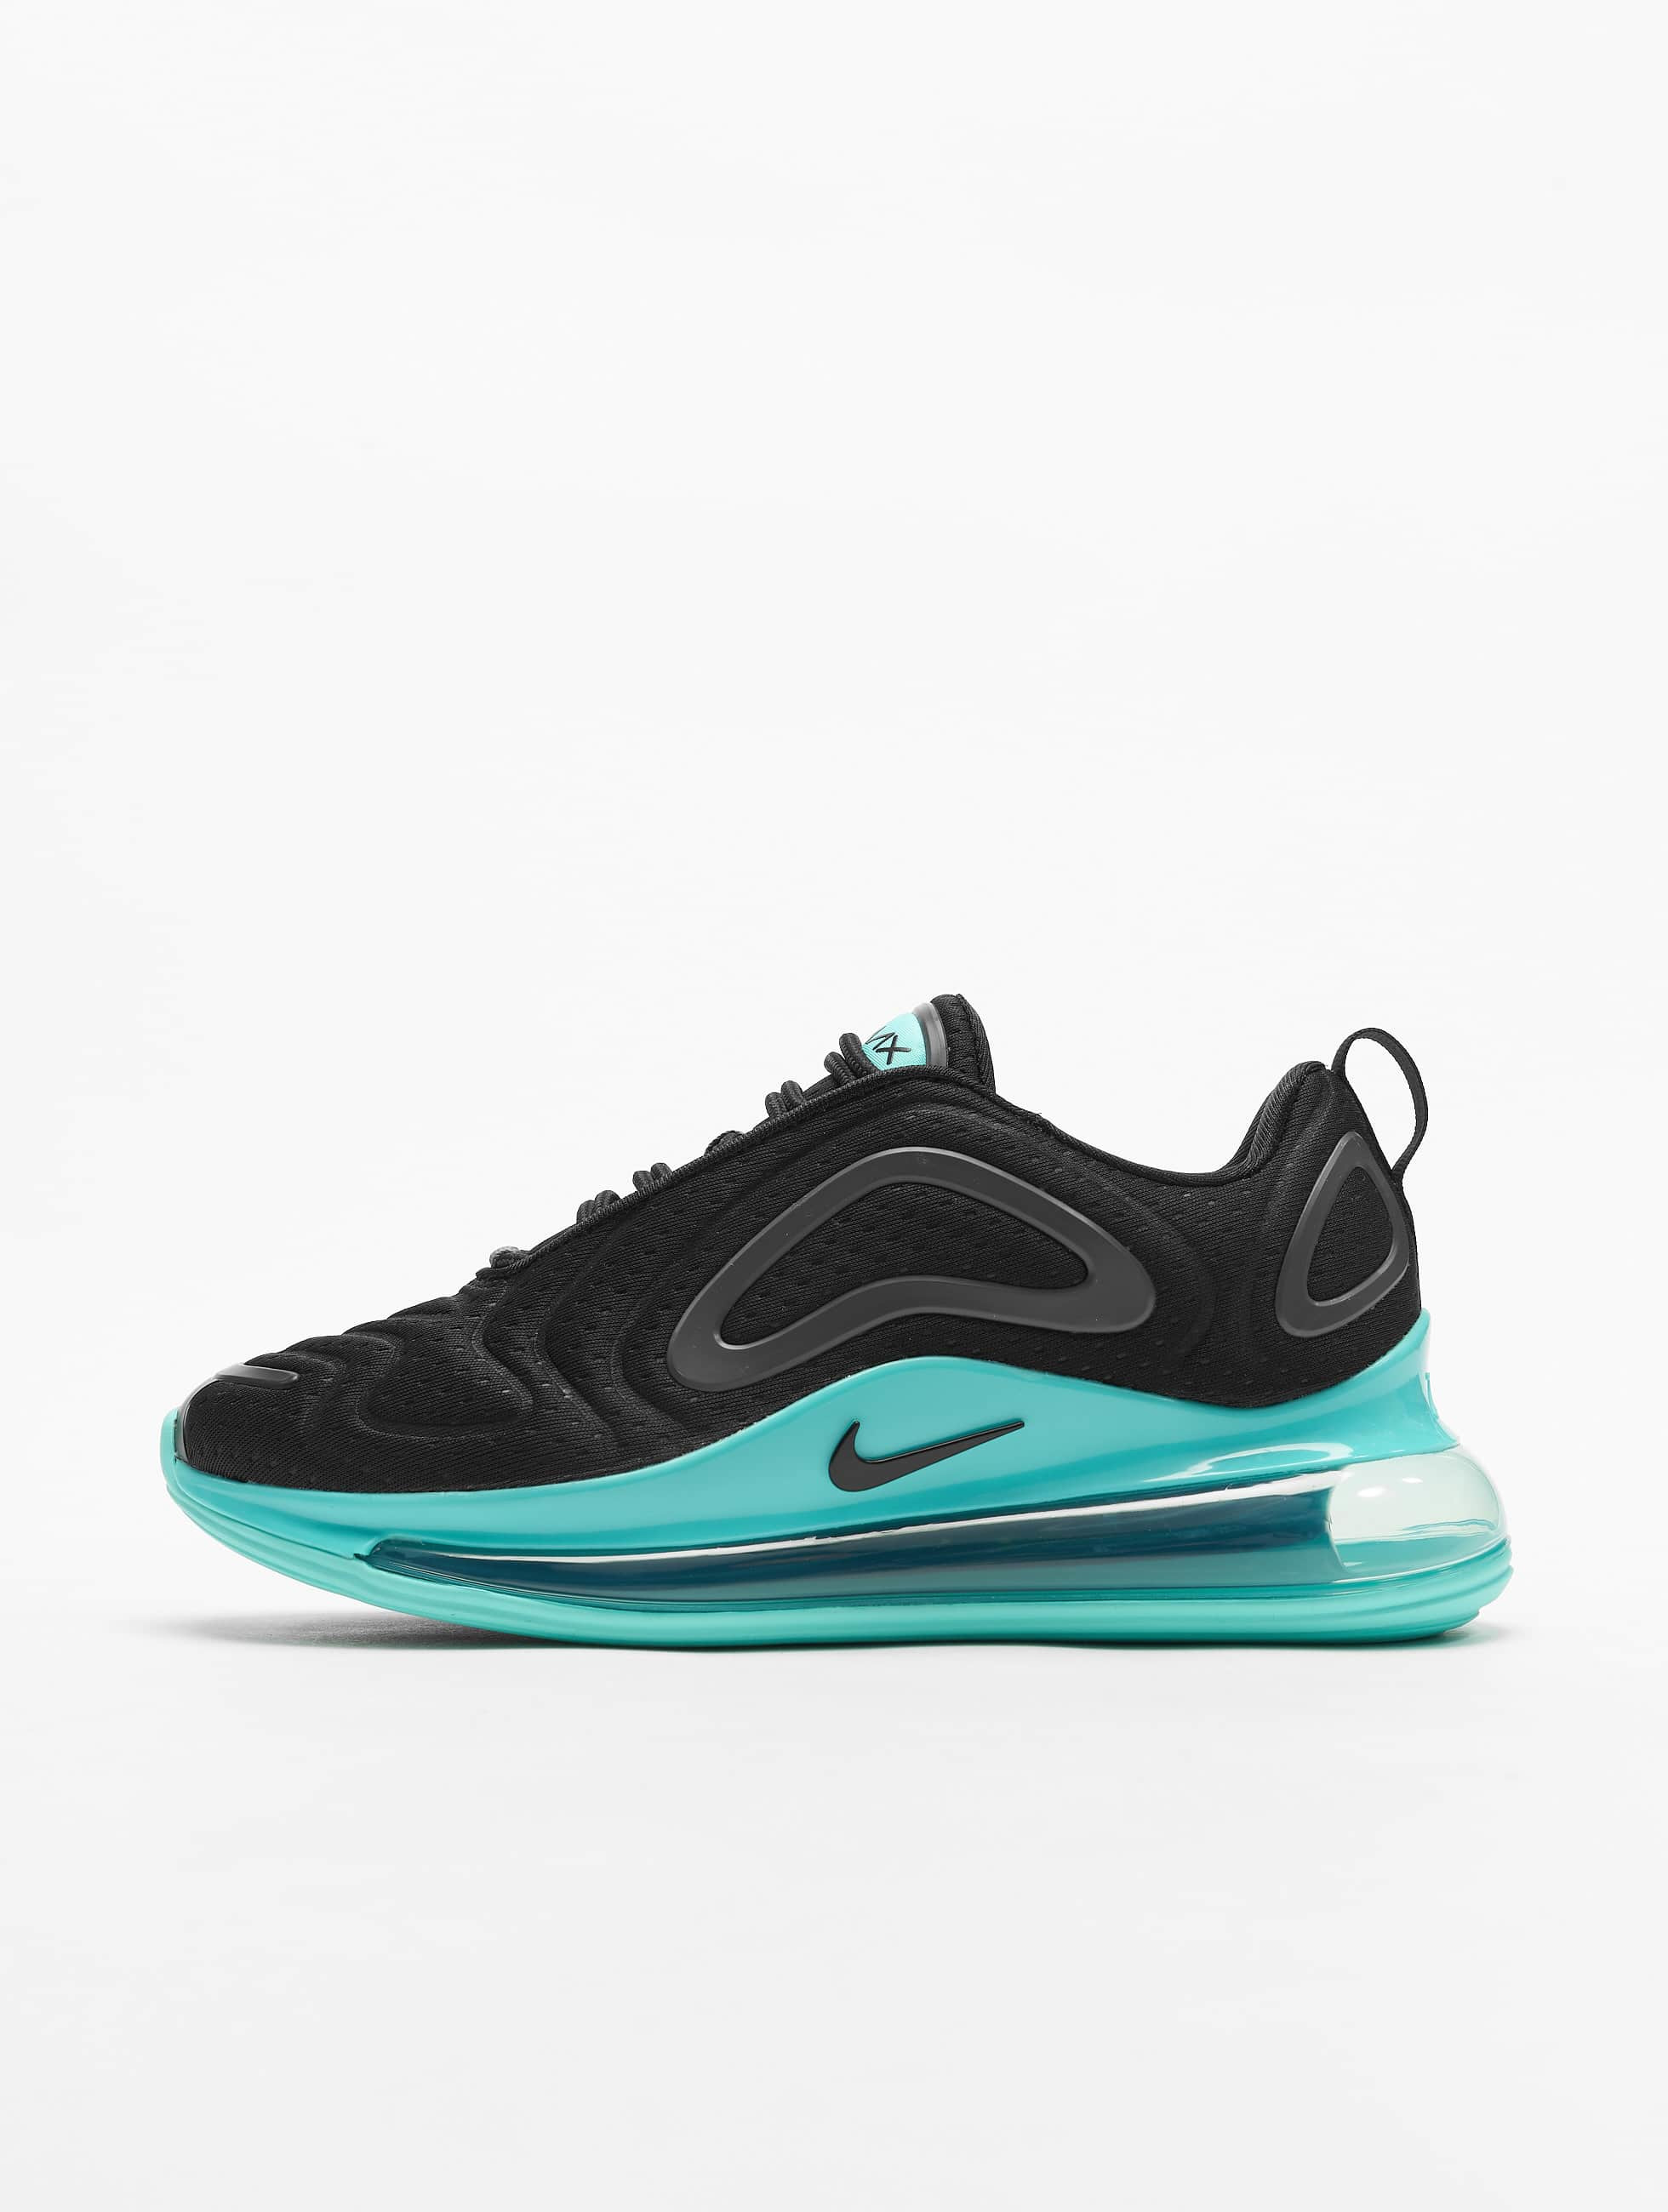 Nike Air Max 720 Sneakers Black/Black/Aurora Green/Dark Grey